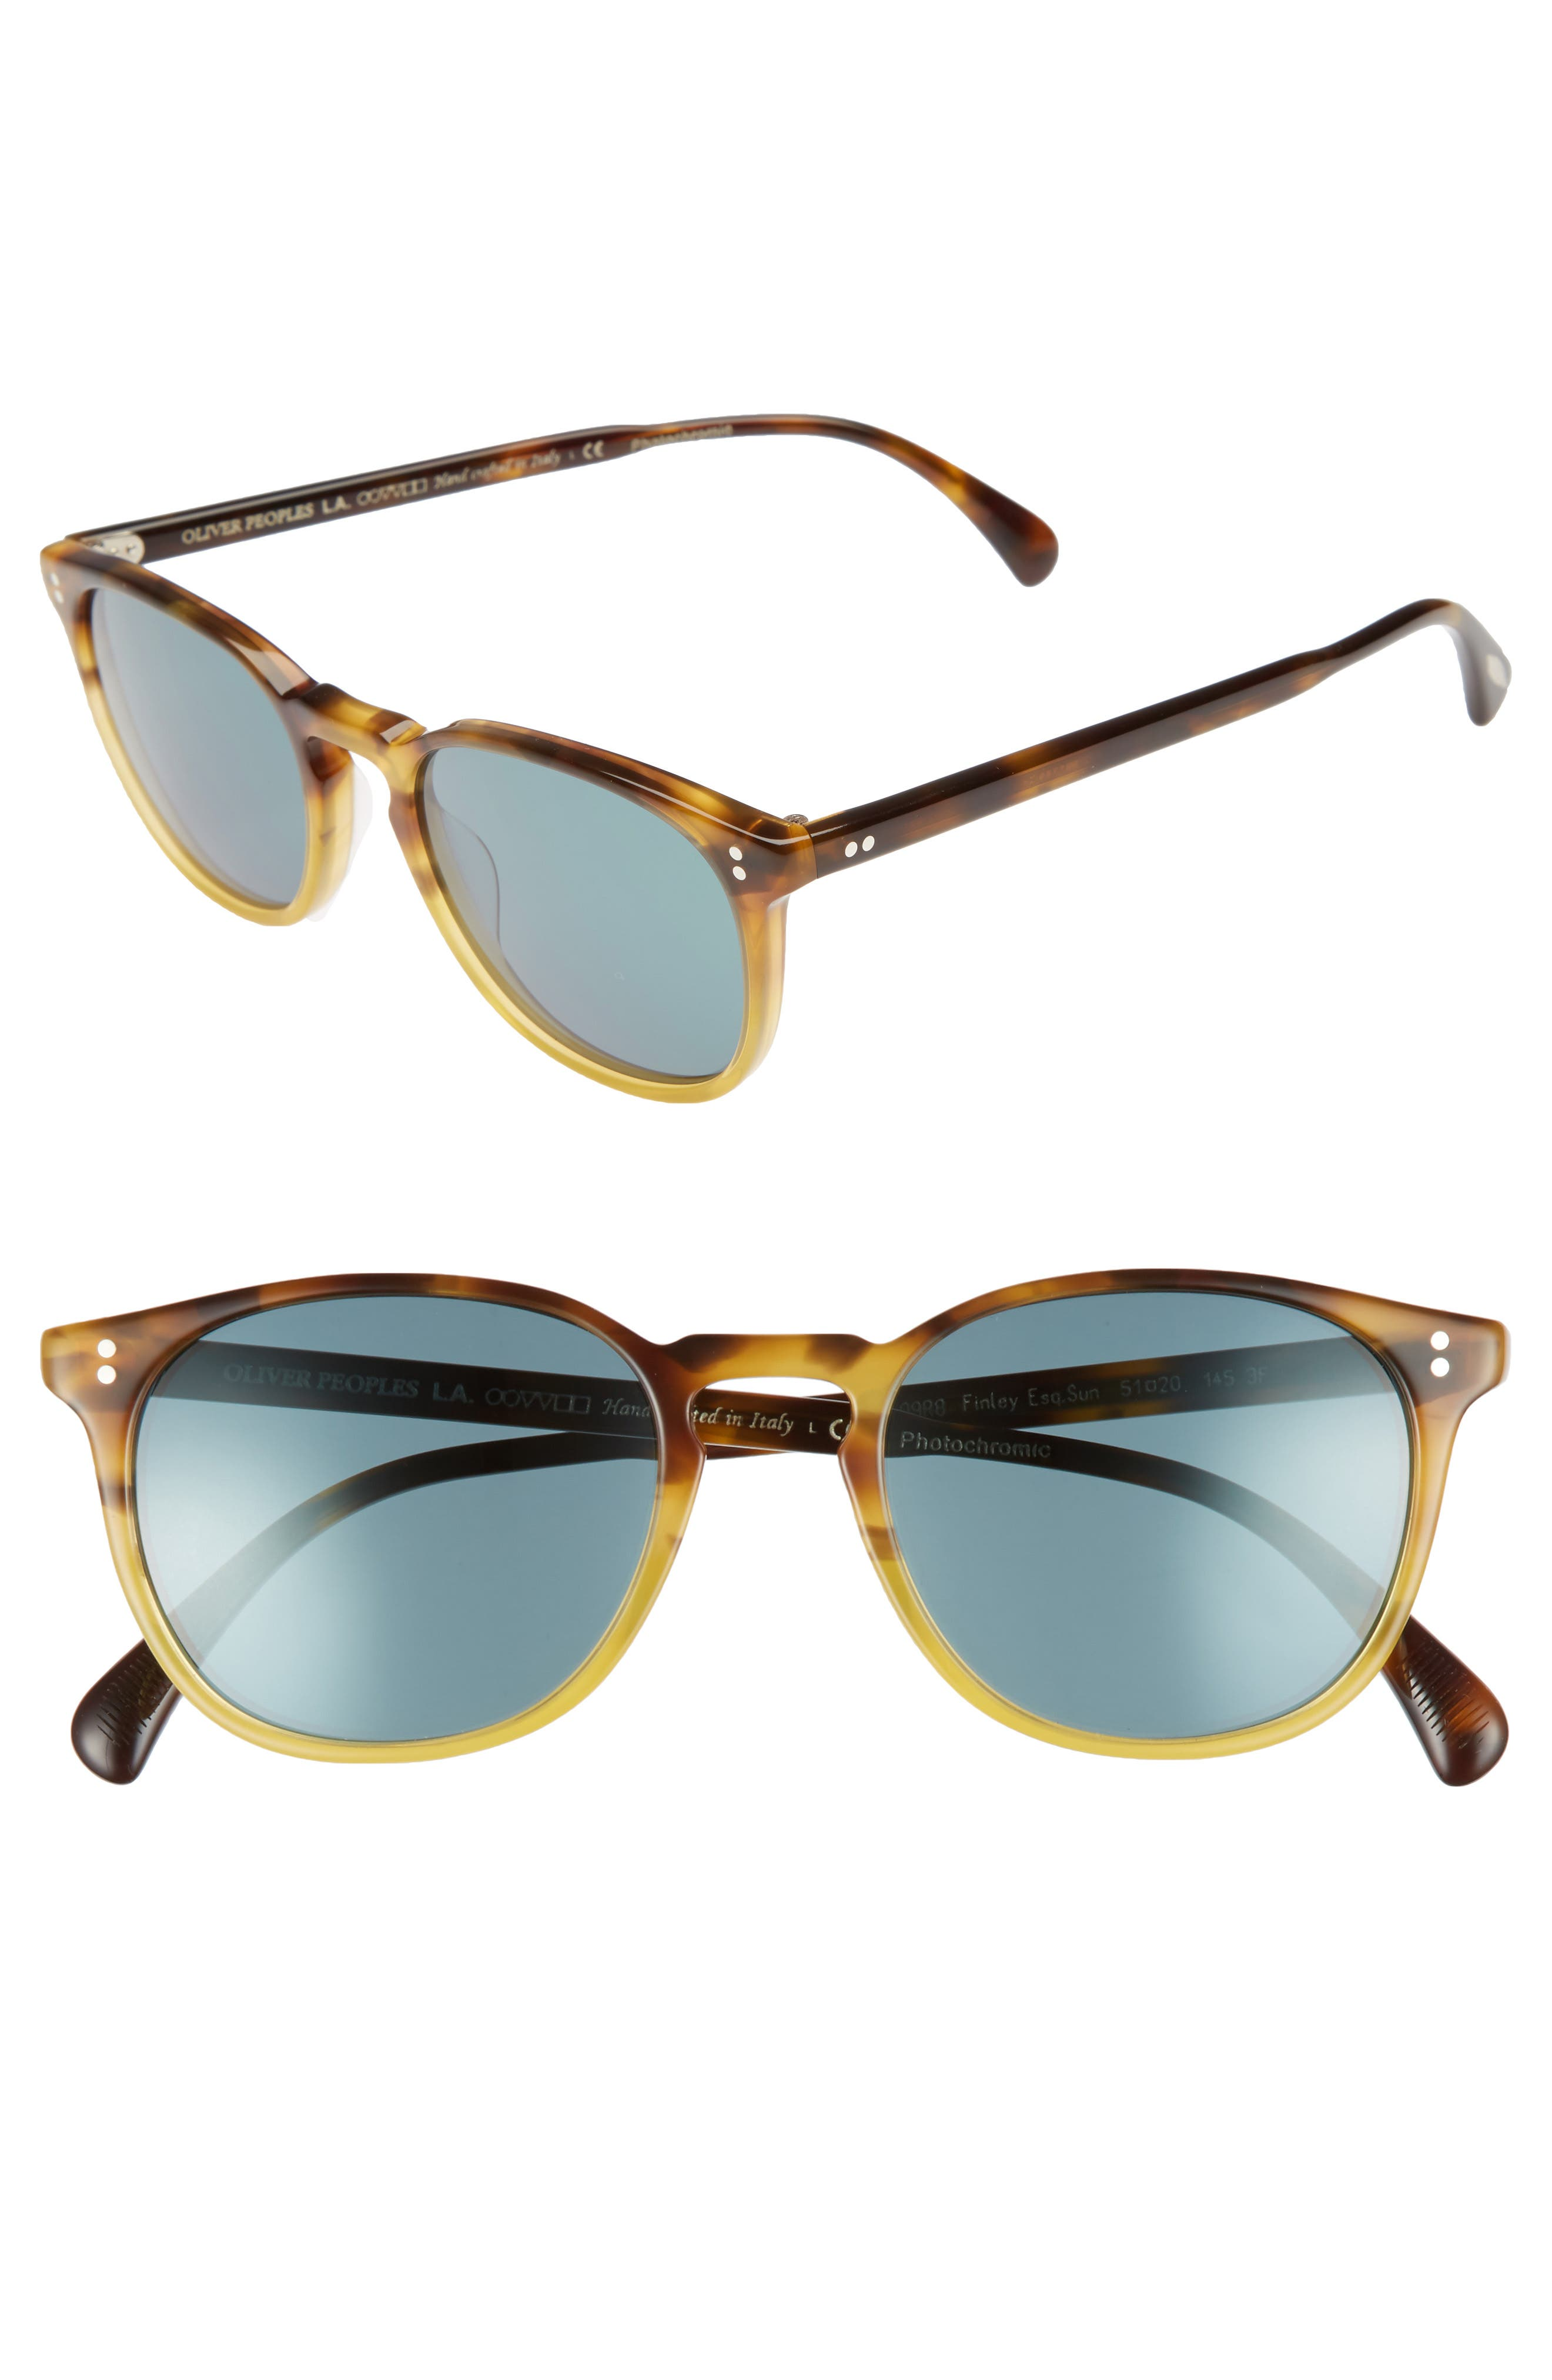 Finley Esq. 51mm Sunglasses,                         Main,                         color, Vbtg